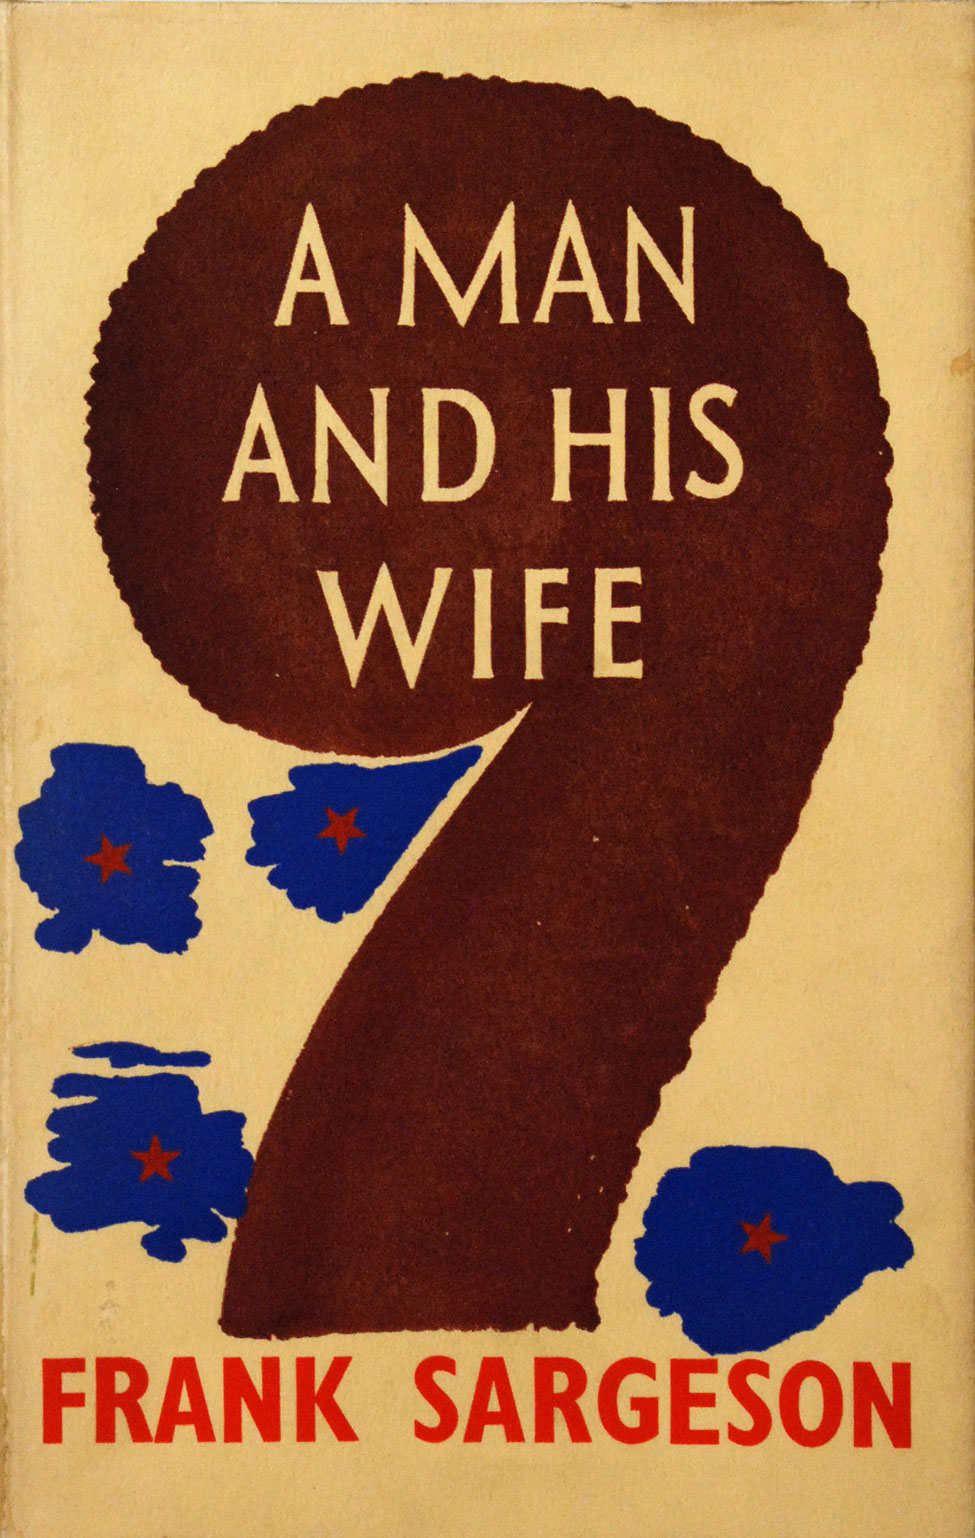 Frank Sargeson. A Man and His Wife.<i> Christchurch: The Caxton Press, 1940.</i>